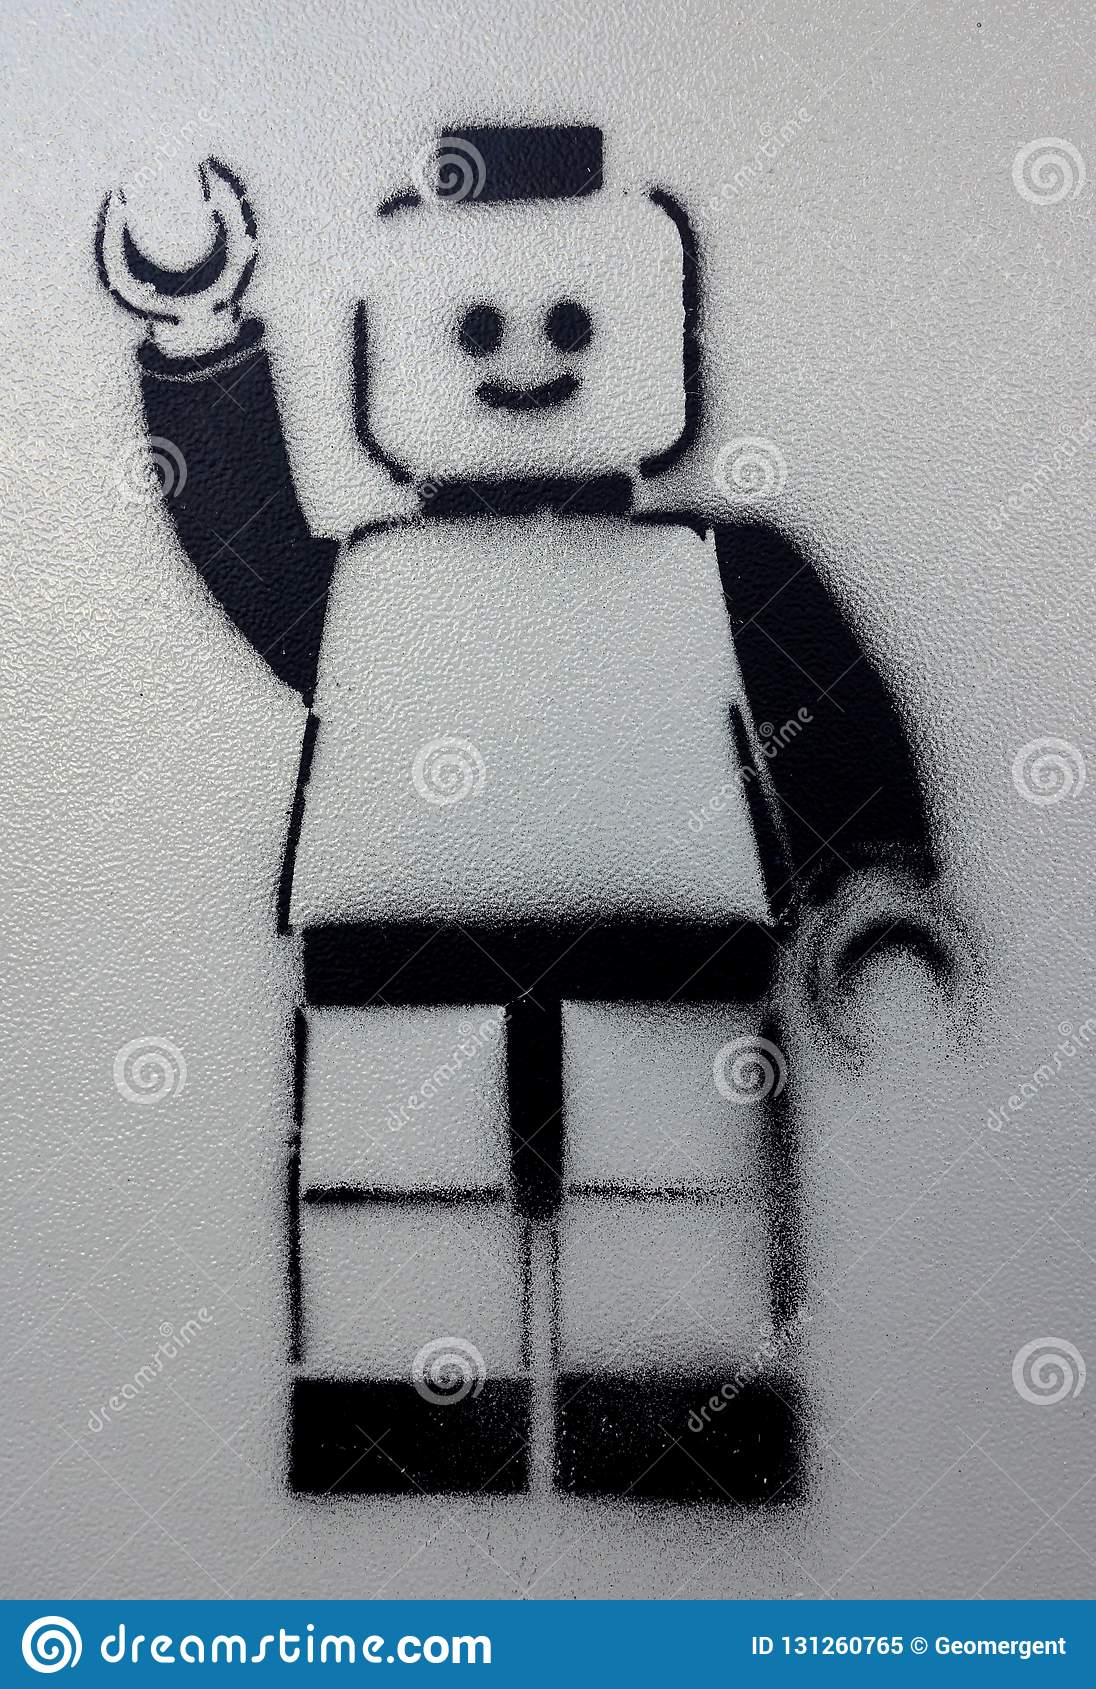 Lego Man Waving In Graffiti Stencil Stock Image - Image of